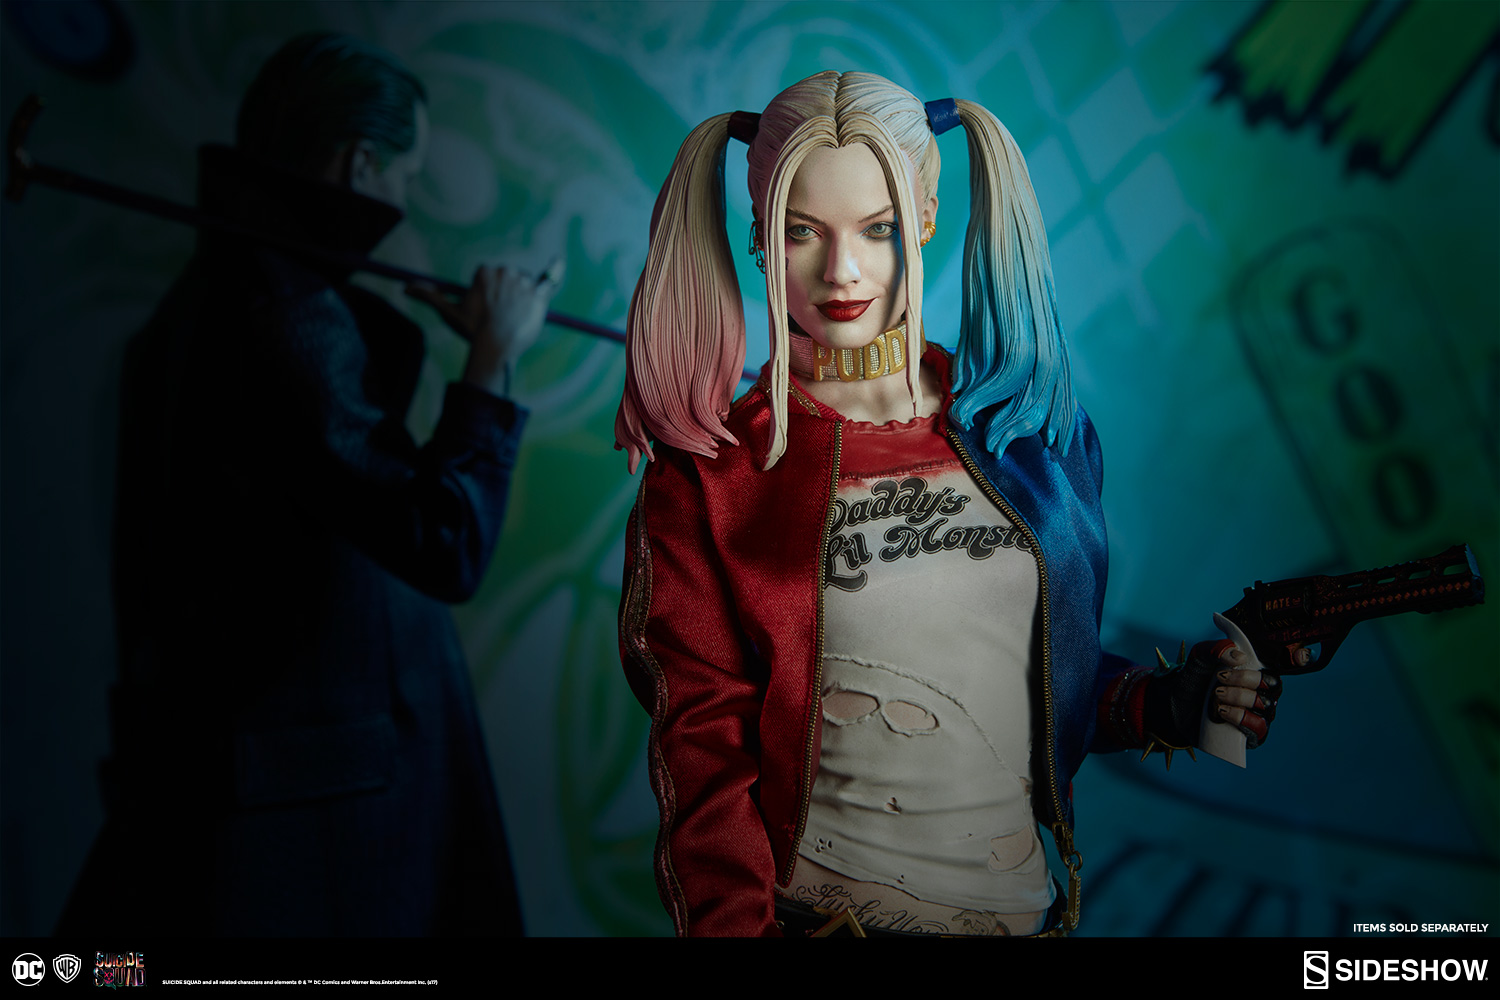 Sideshow Collectibles Suicide Squad Harley Quinn Premium Format Figure Pre-Orders